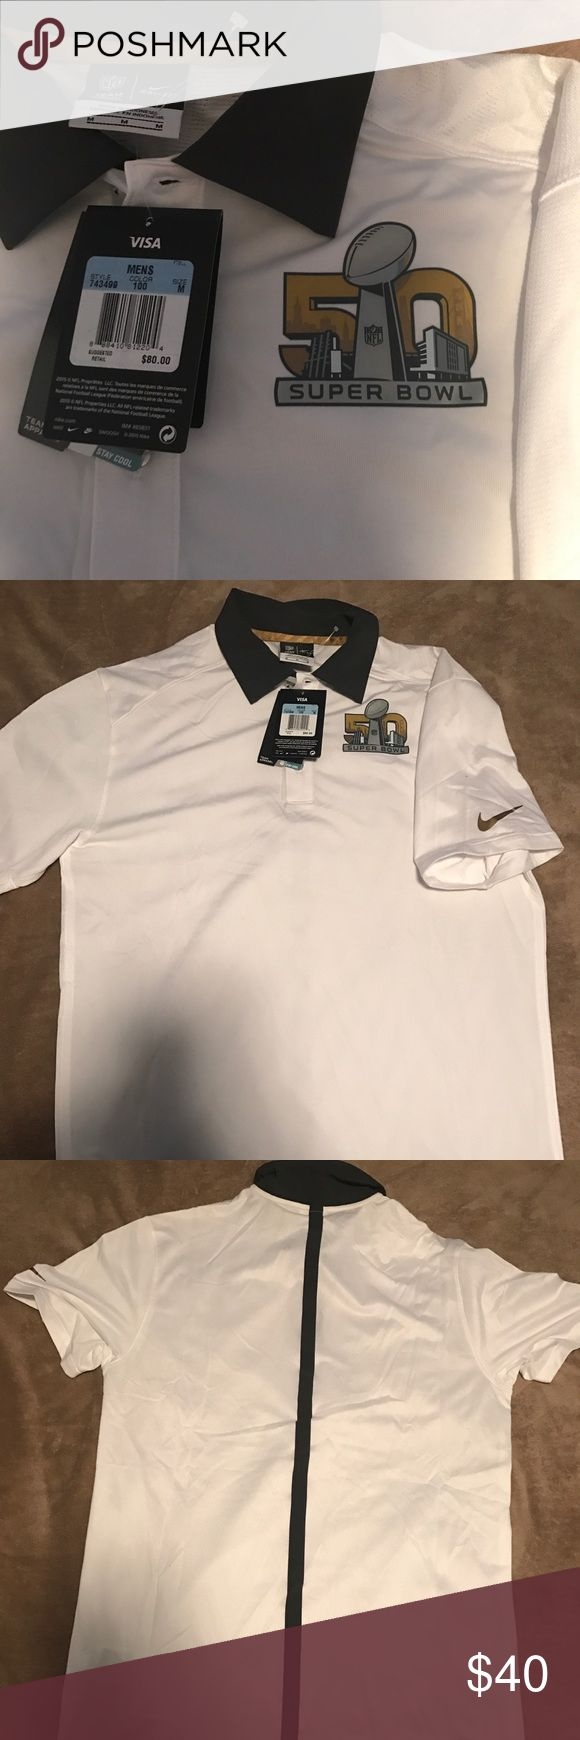 Nike NFL Superbowl 50 Dri Fit Polo Shirt Brand new with tags still. Limited edition Nike Dri Fit superbowl 50 Polo. With all tags still on . Suggested retail is $80 Nike Shirts Tees - Short Sleeve